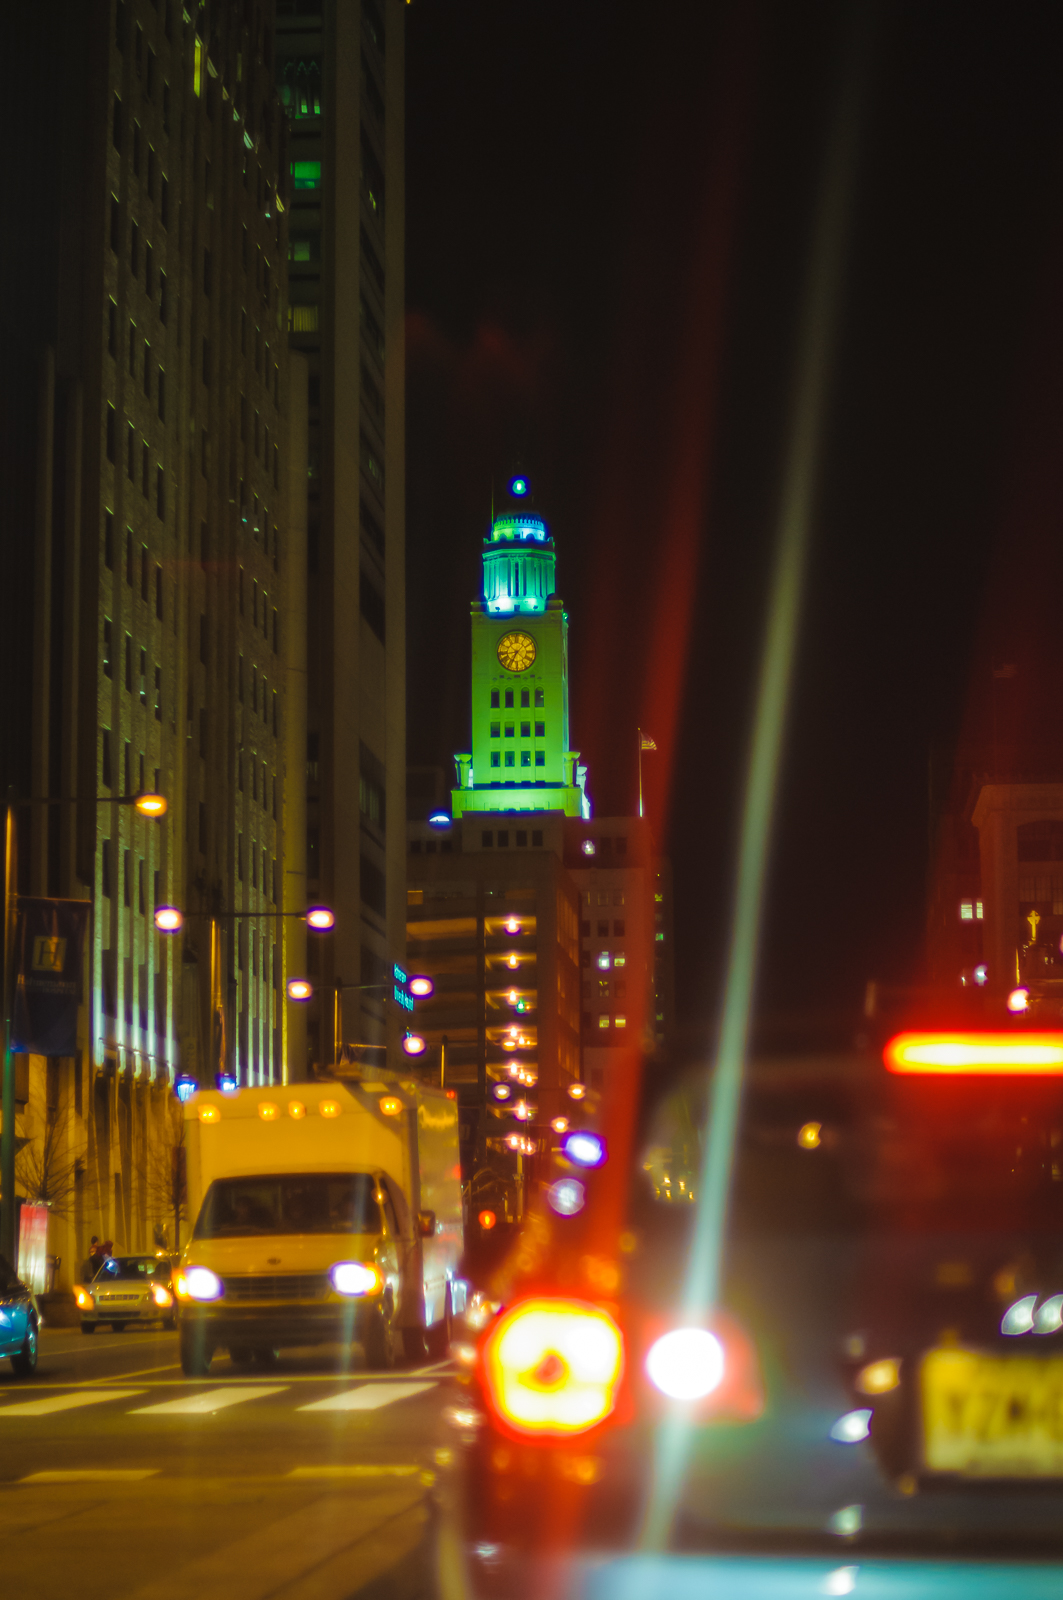 philly-at-night-5847